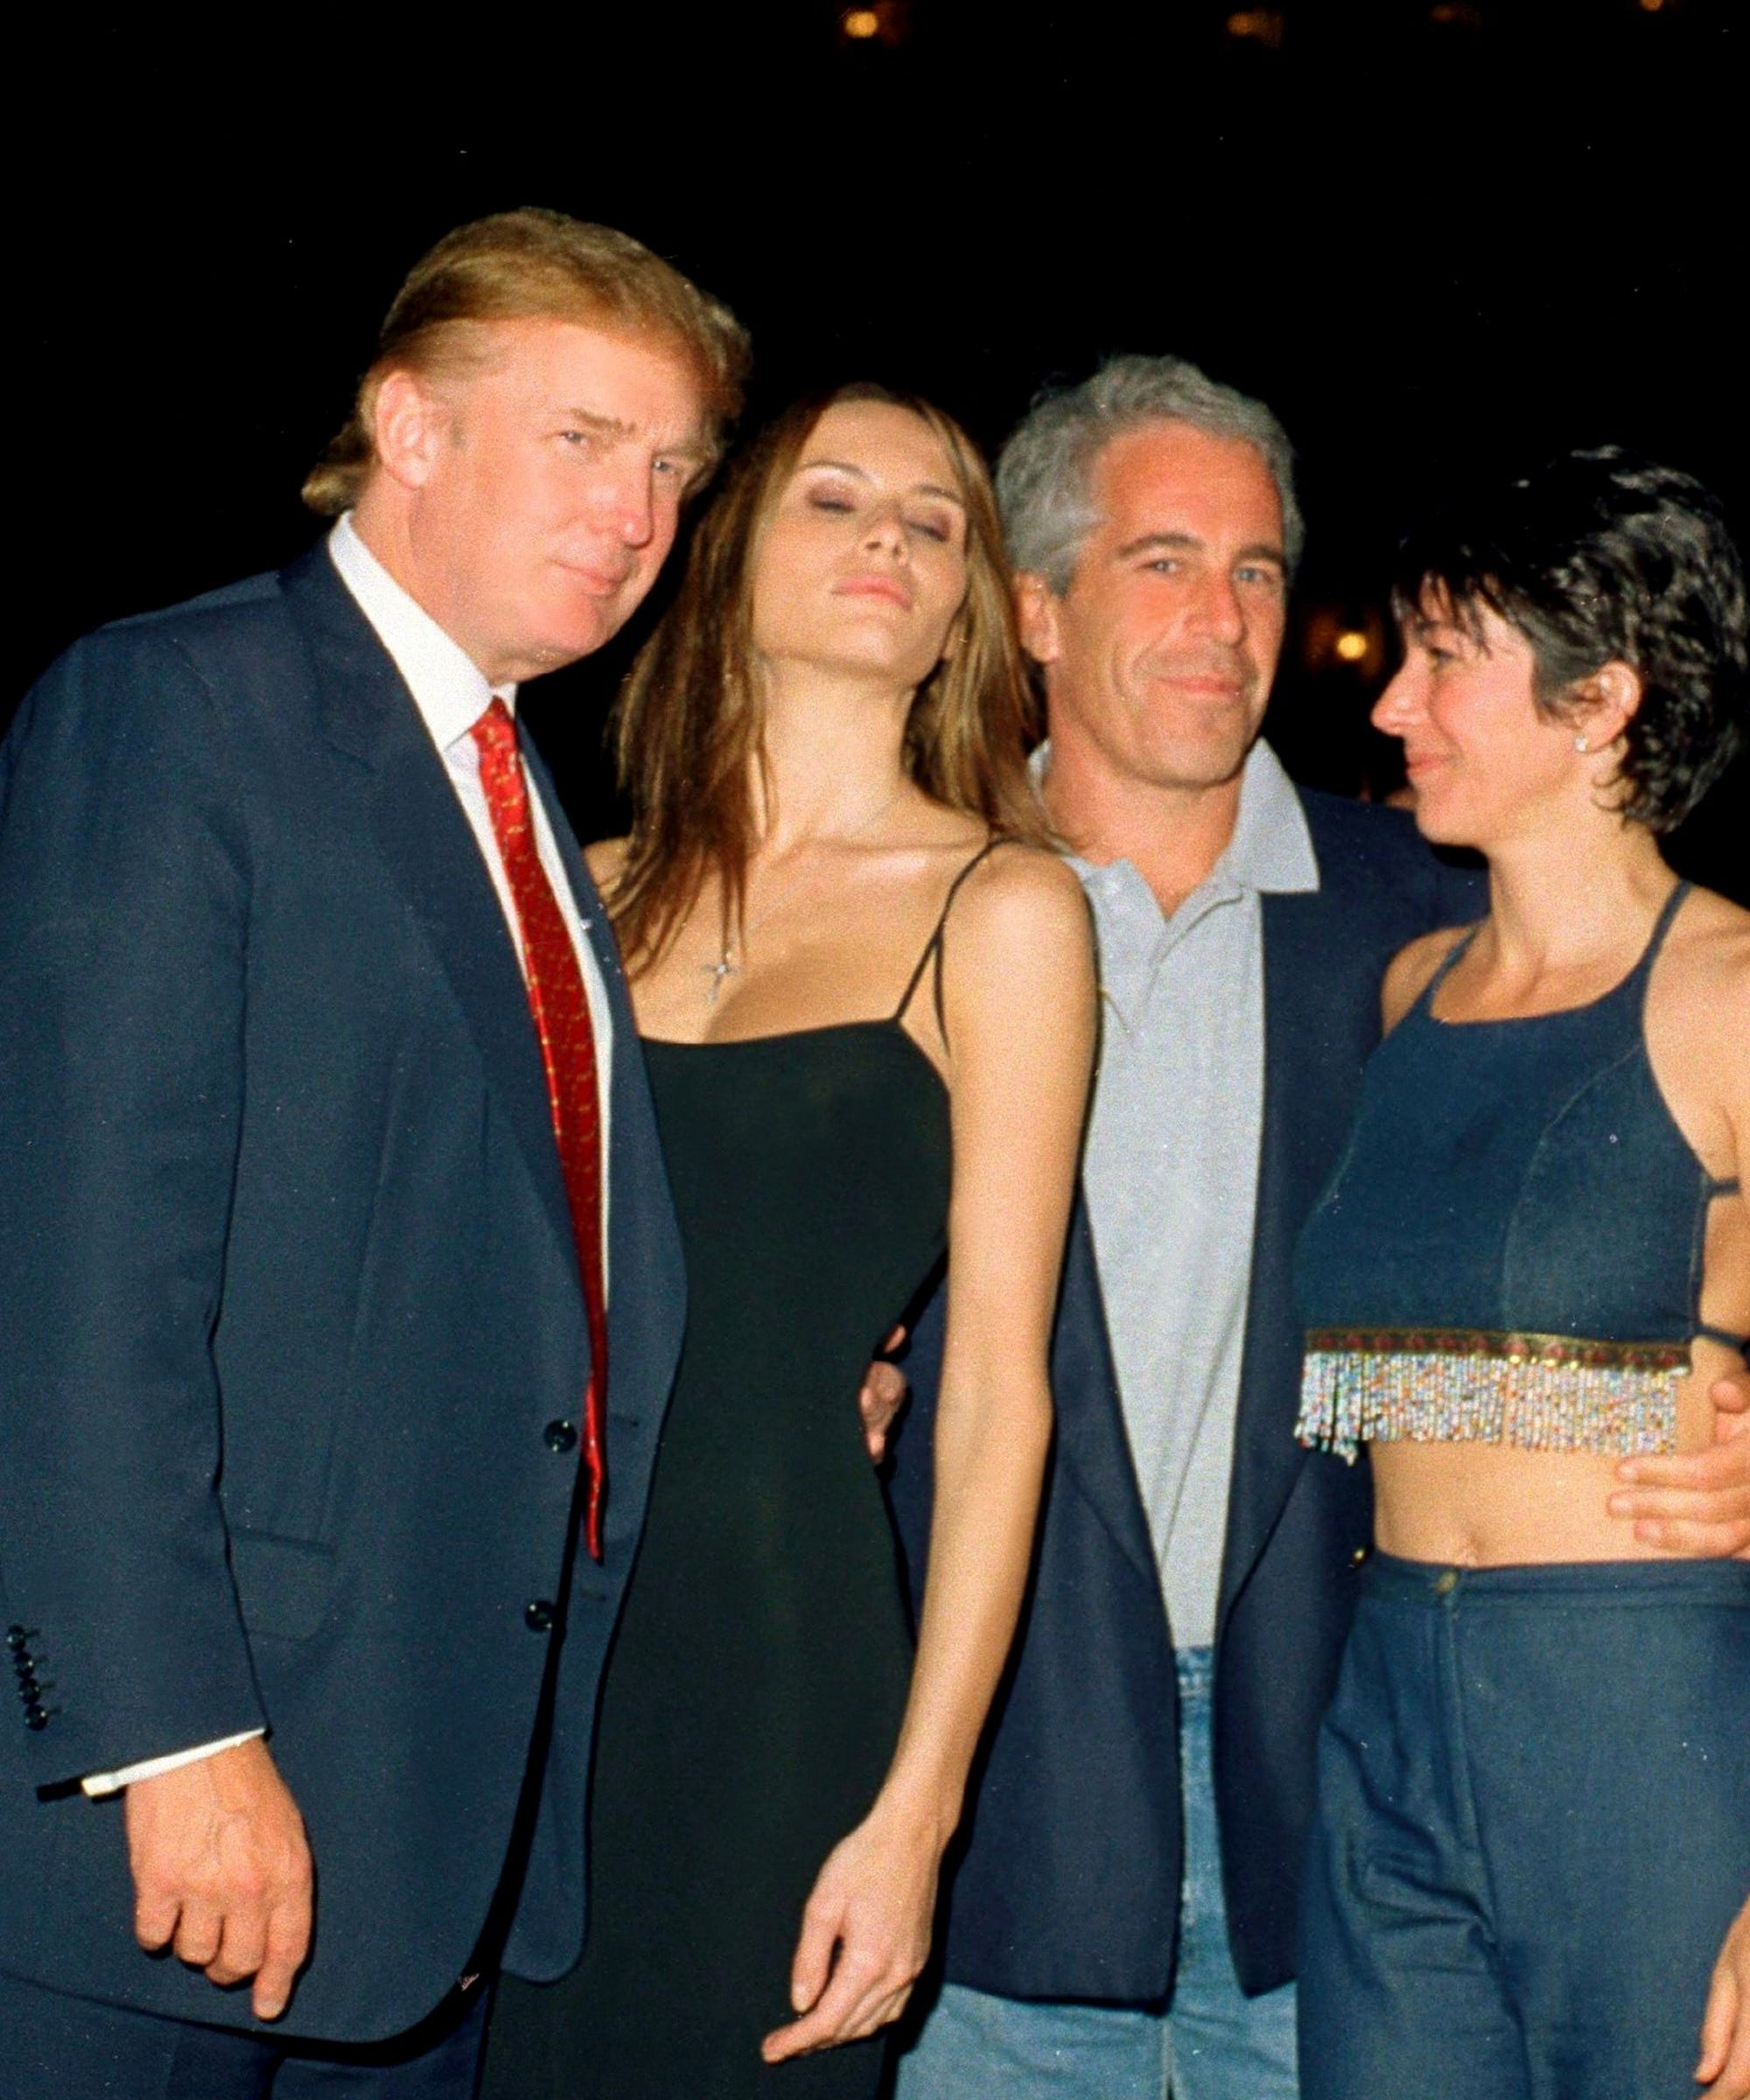 Andrea Prince Sex all jeffrey epstein friends involved in sex trafficking